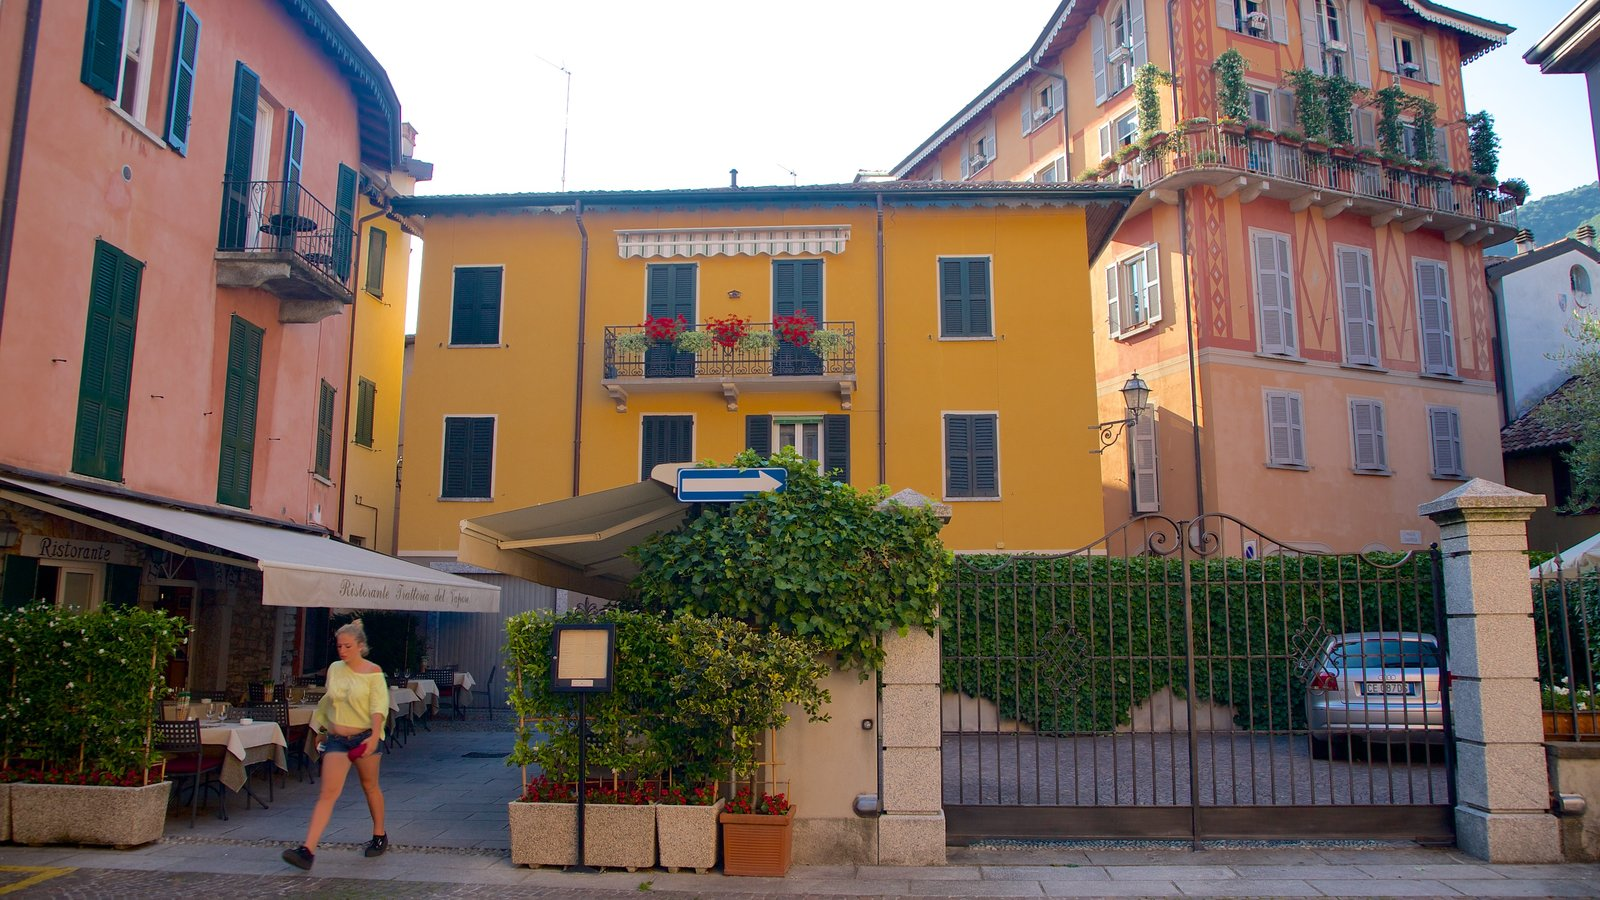 Cernobbio featuring a house, cafe lifestyle and heritage architecture